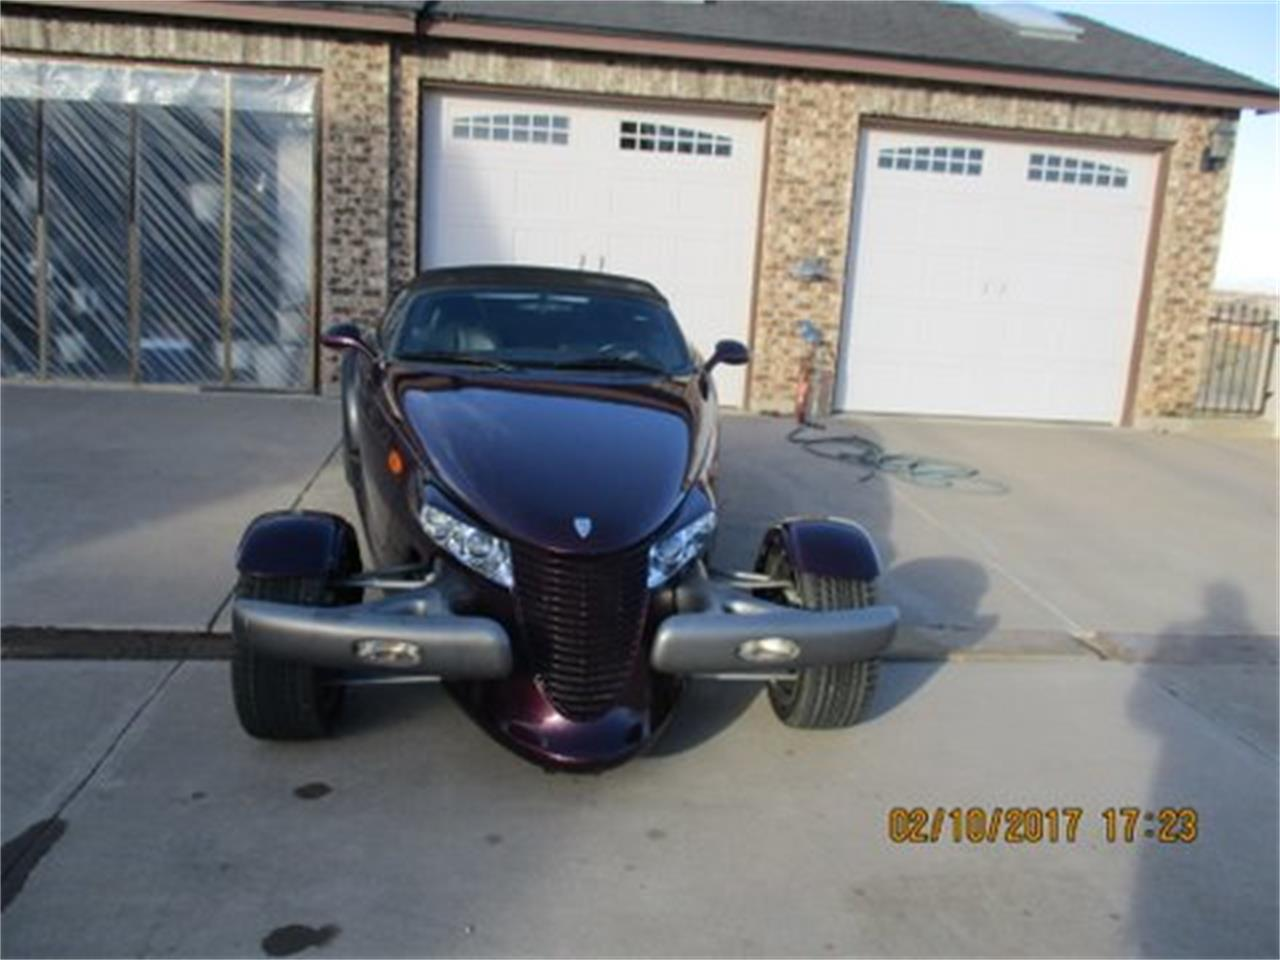 Large Picture of '99 Plymouth  Prowler located in New Mexico - $34,000.00 Offered by a Private Seller - KHNV